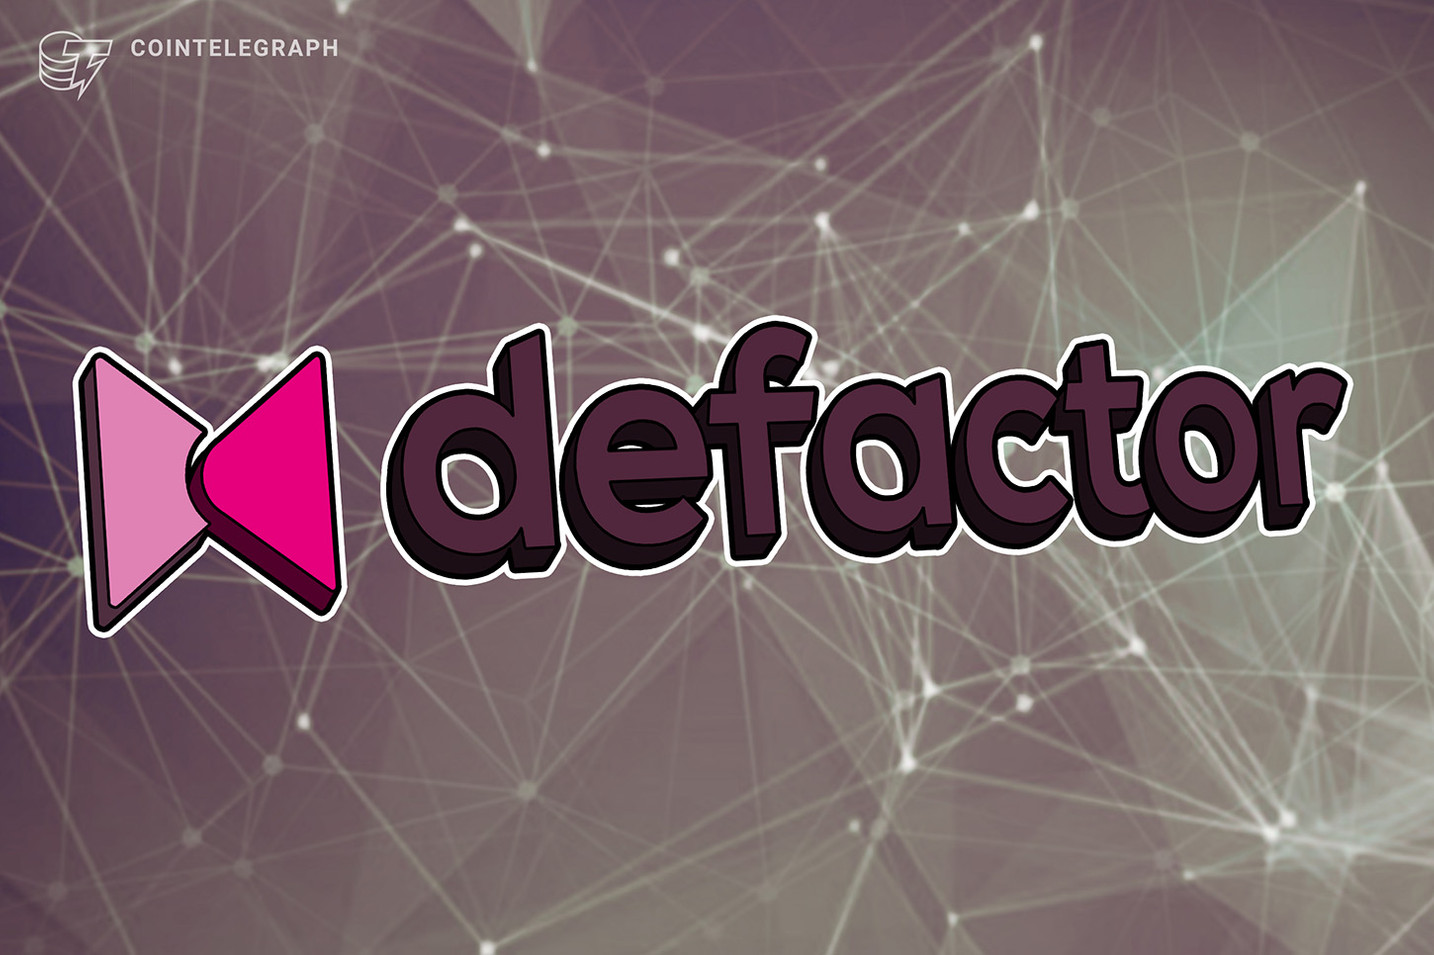 Defactor raises $1M within two weeks of entering the market